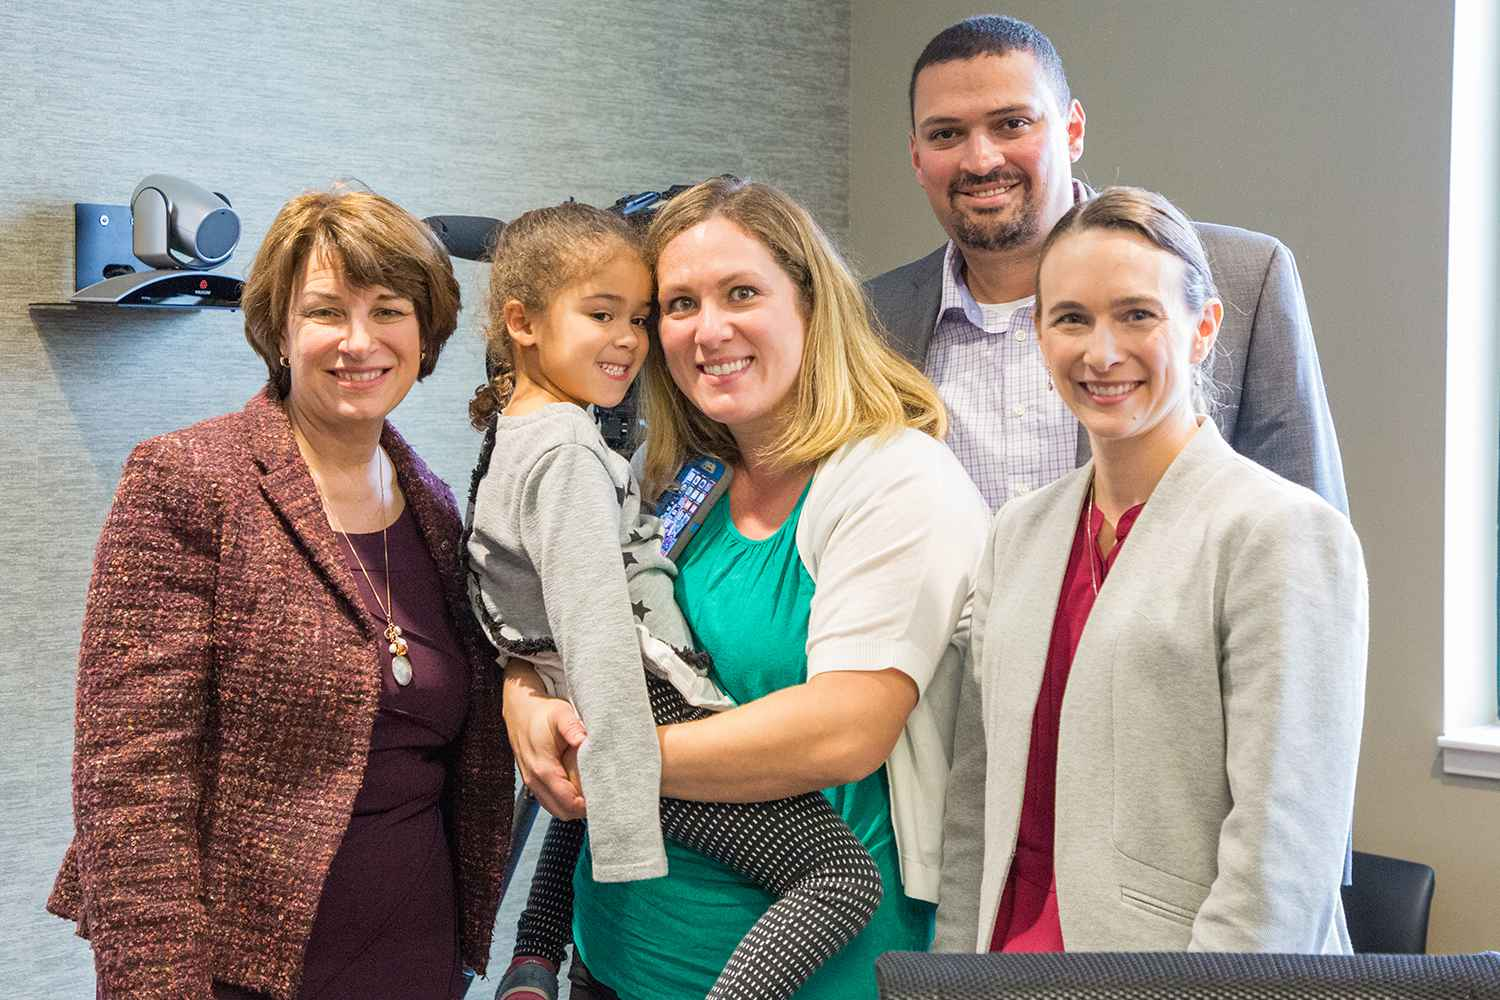 Senator Klobuchar poses with Dr. Angela Sinner and the parents of Sophia Ayouche